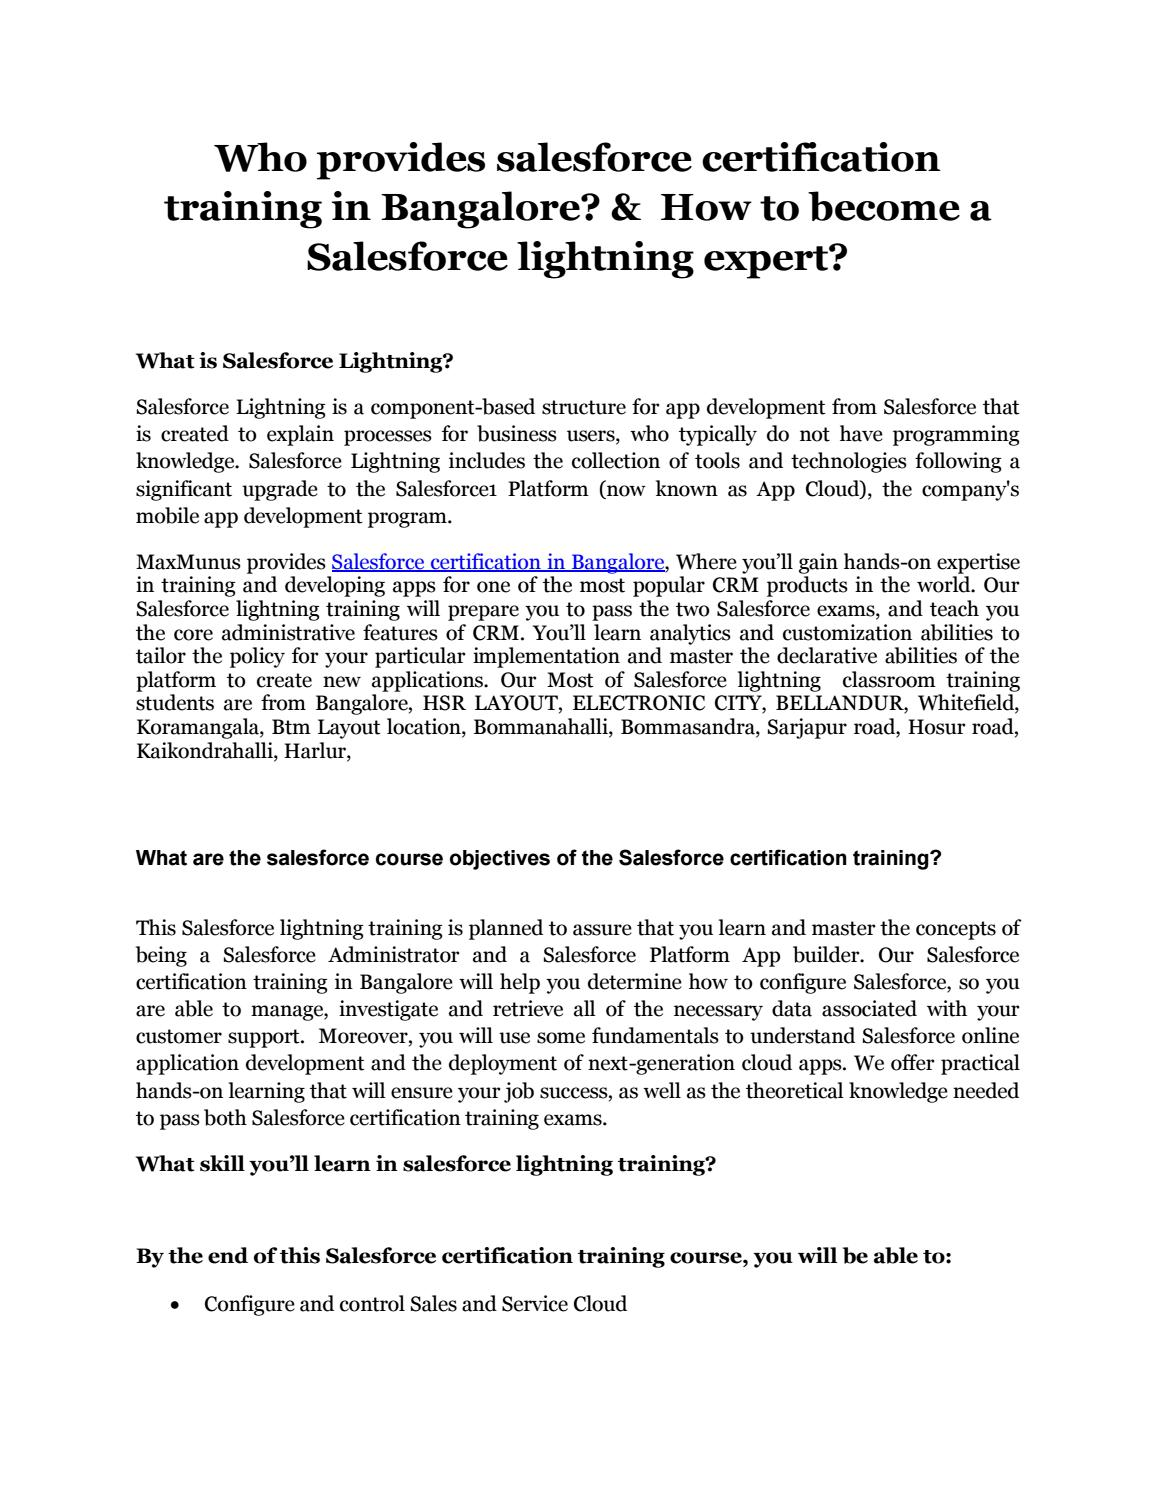 Who provides salesforce certification training in Bangalore